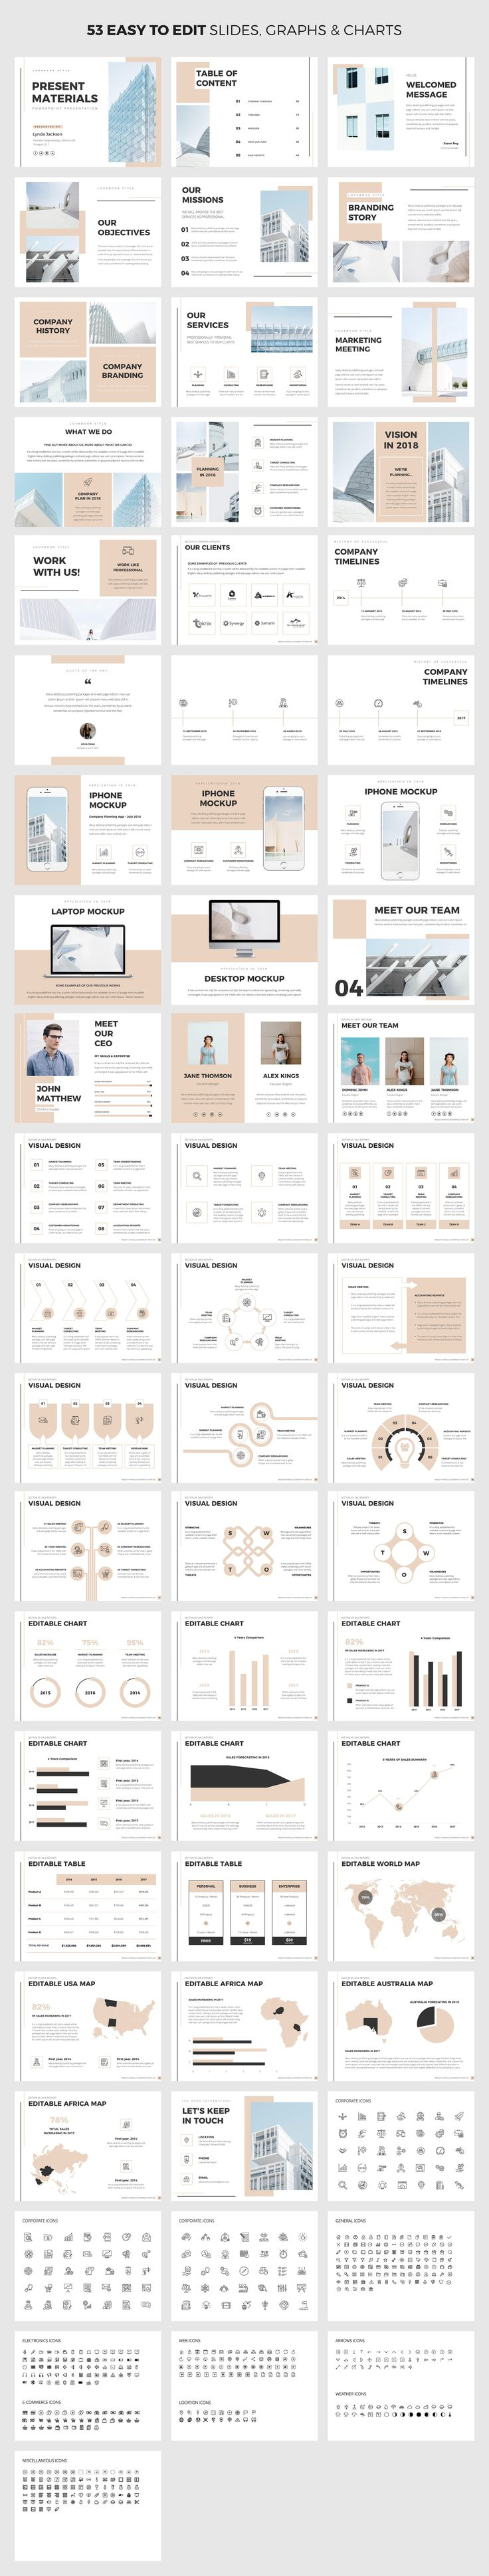 posterpresentations com templates - best 25 poster presentation template ideas on pinterest